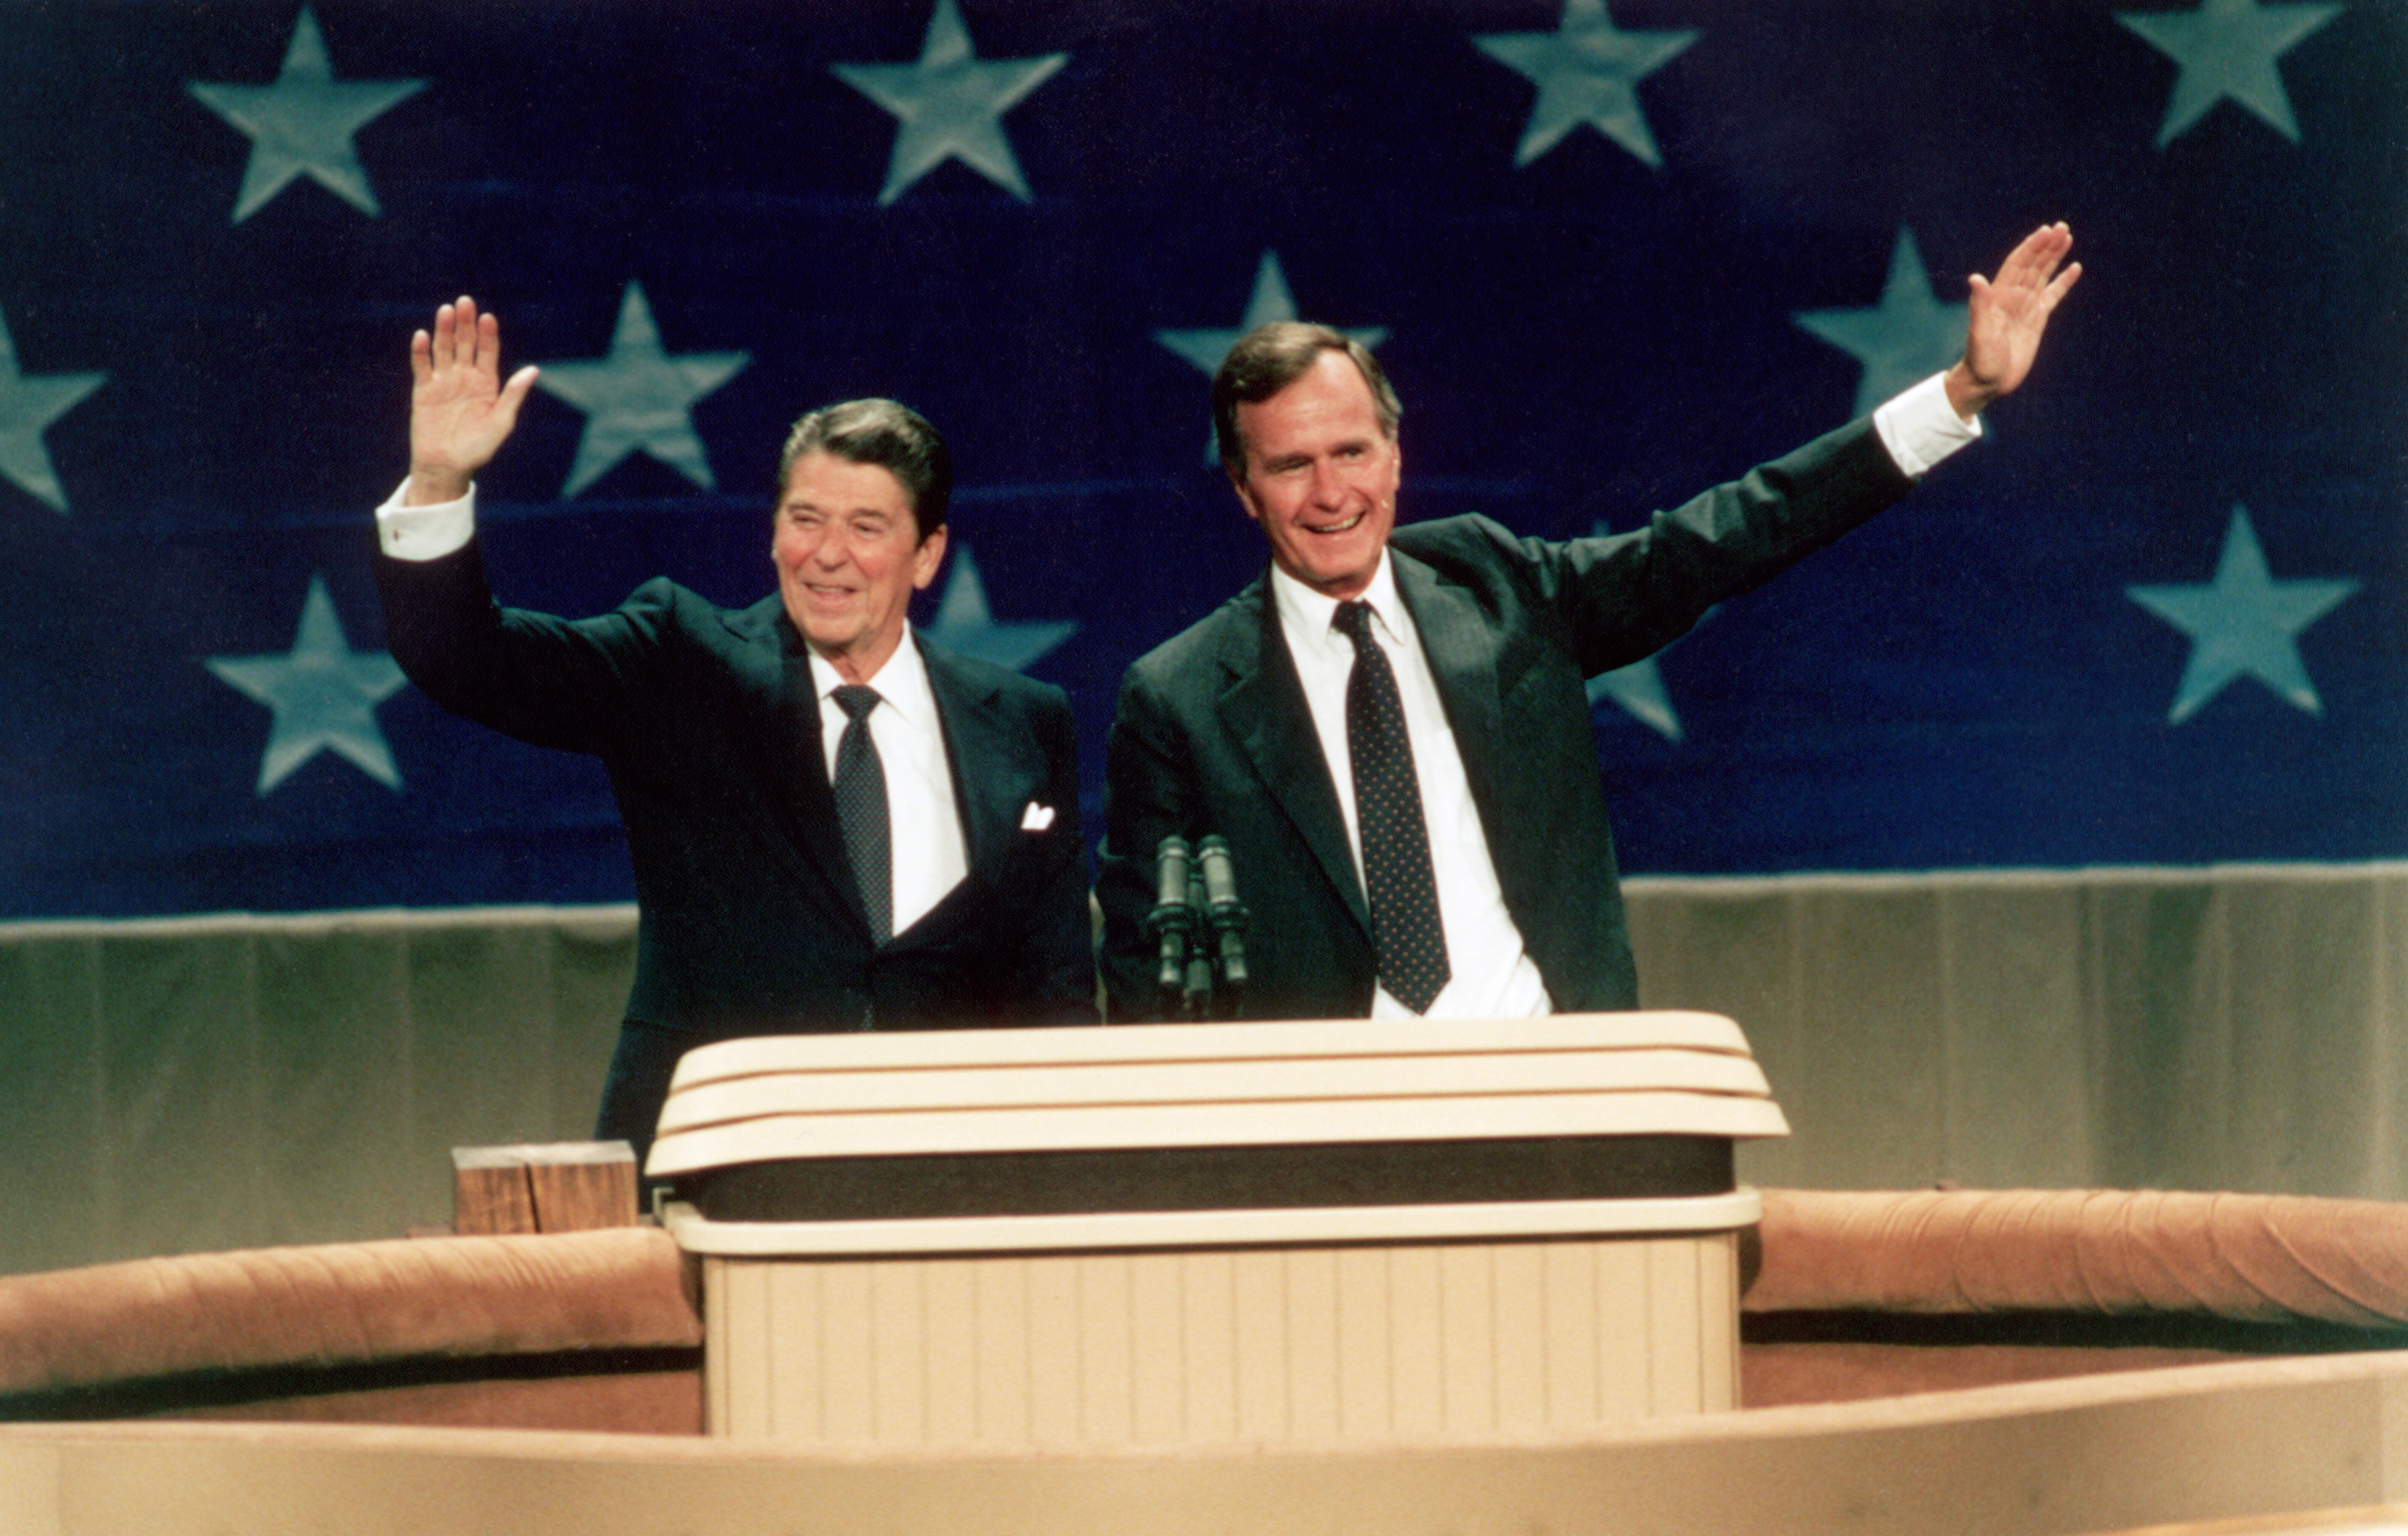 Ronald Reagan and George H.W. Bush at lectern and waving (© Corbis via Getty Images)